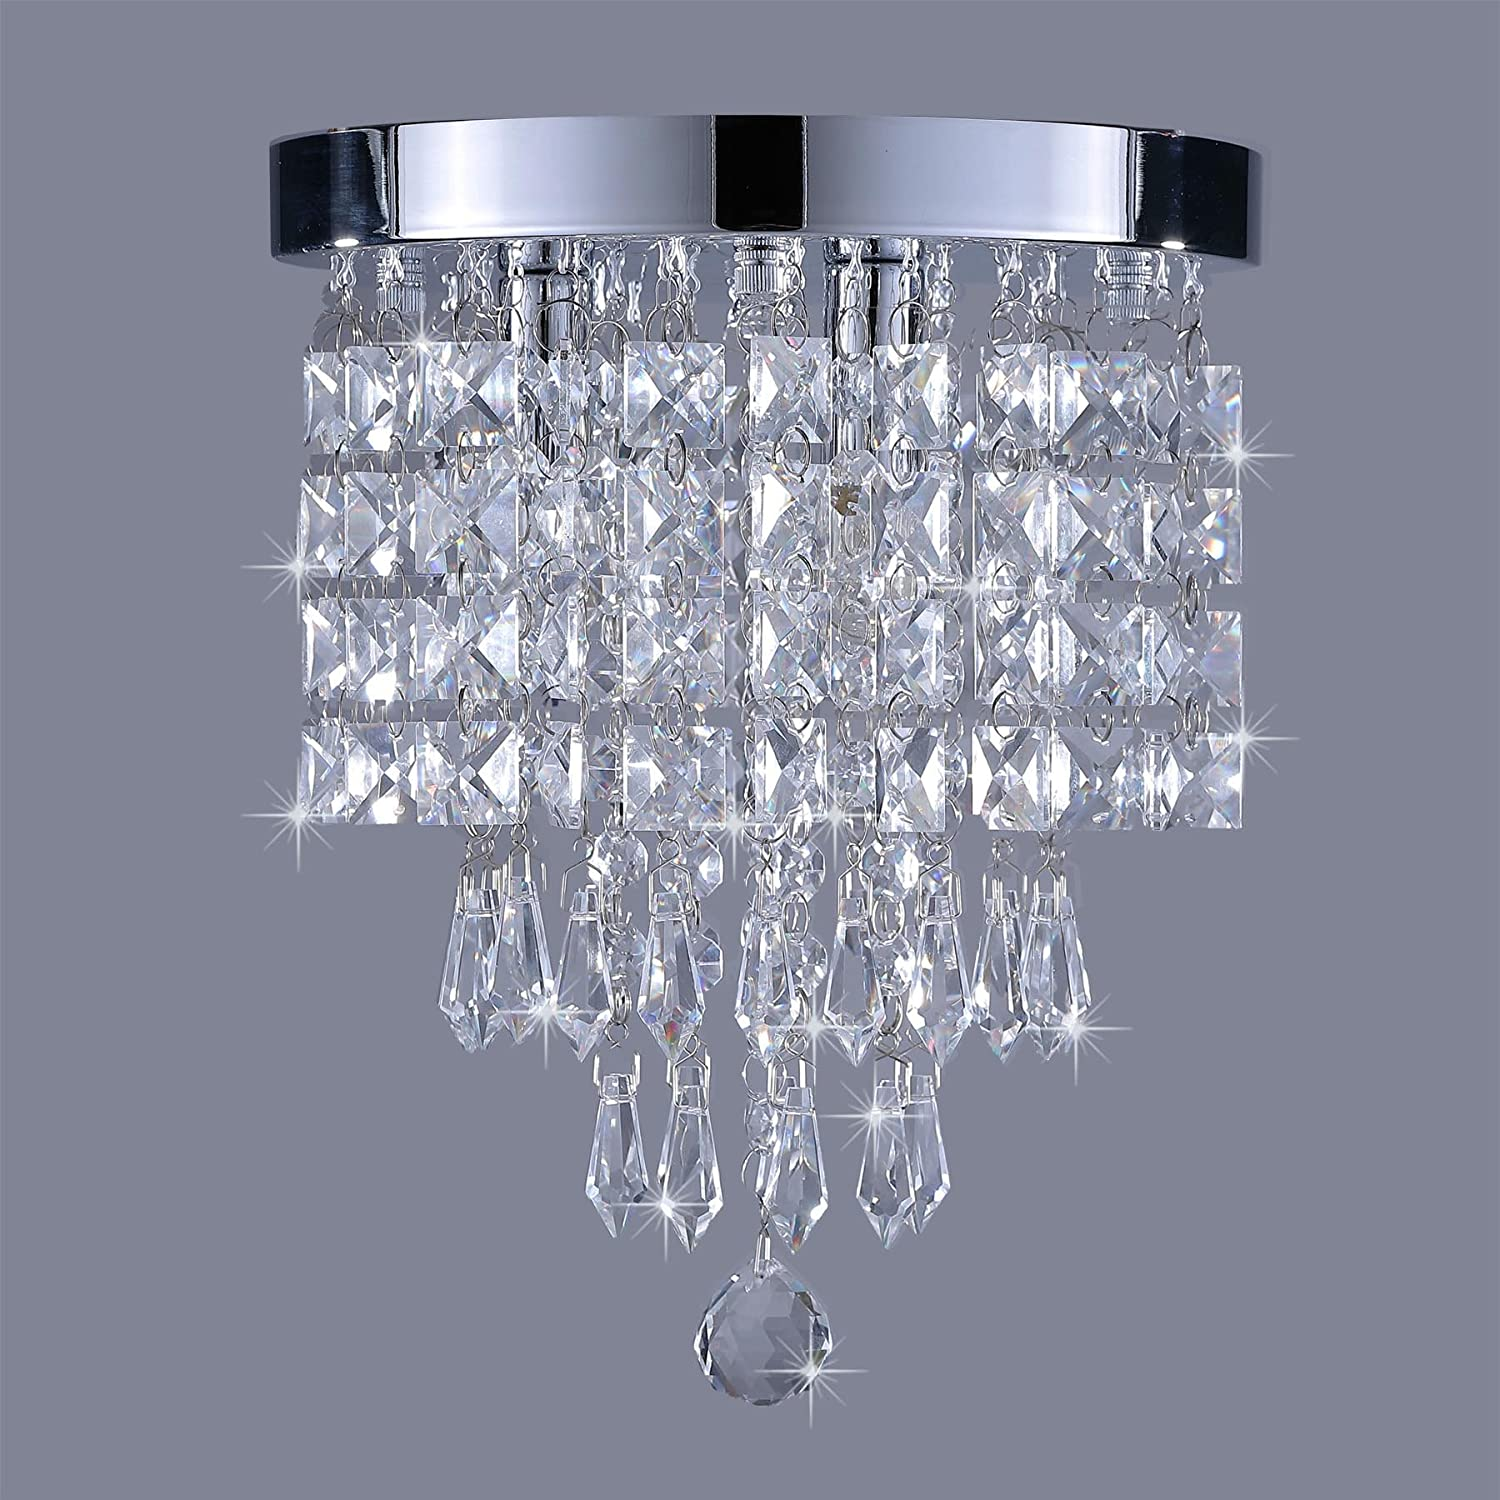 CO Z Mini Crystal Chandelier with 3 Lights